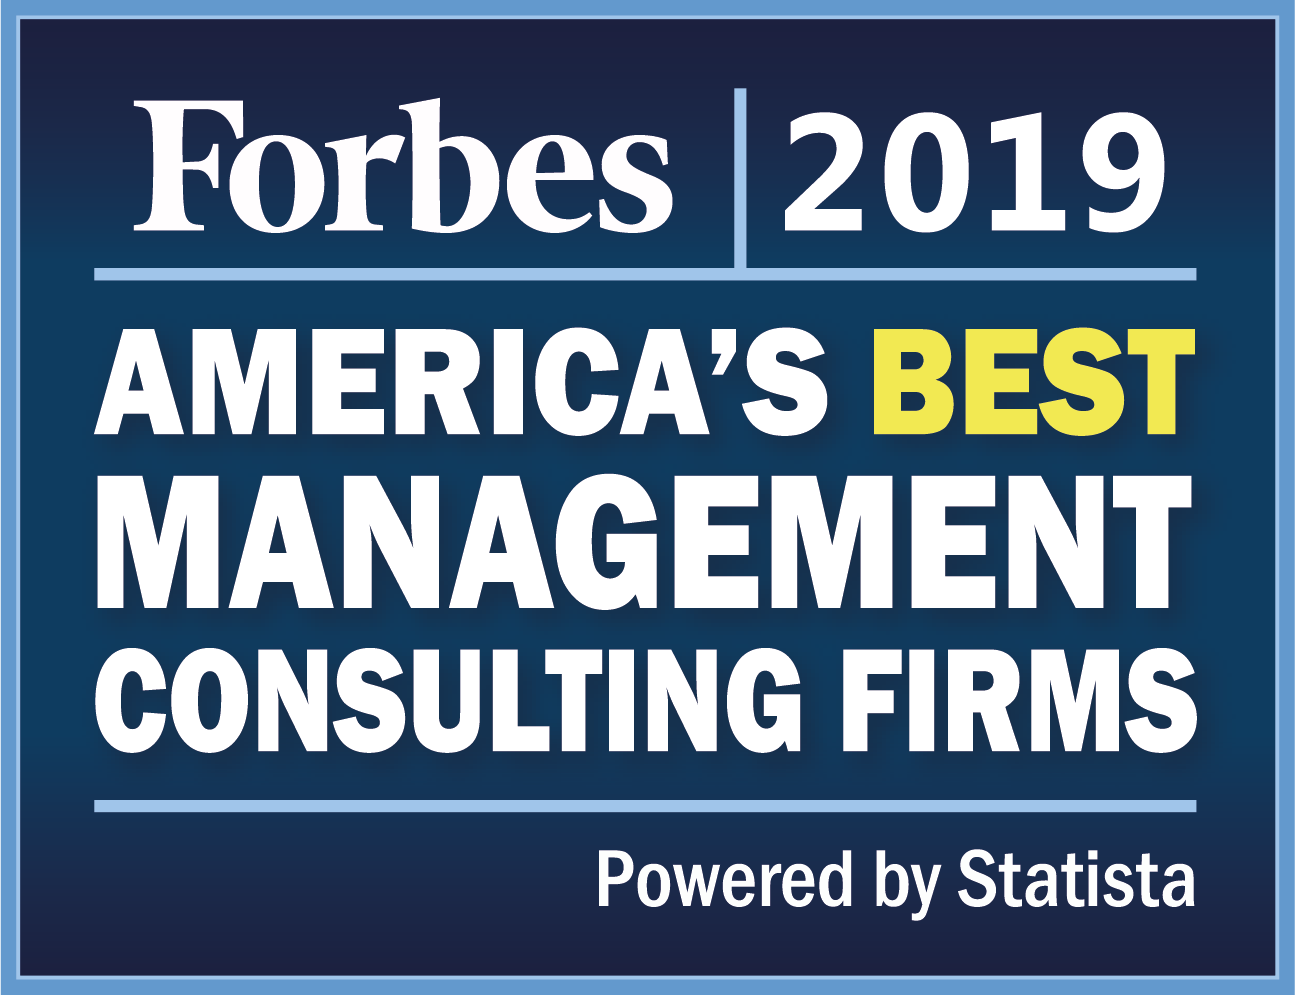 RSC named as one of 'America's Best Management Consulting Firms 2019'